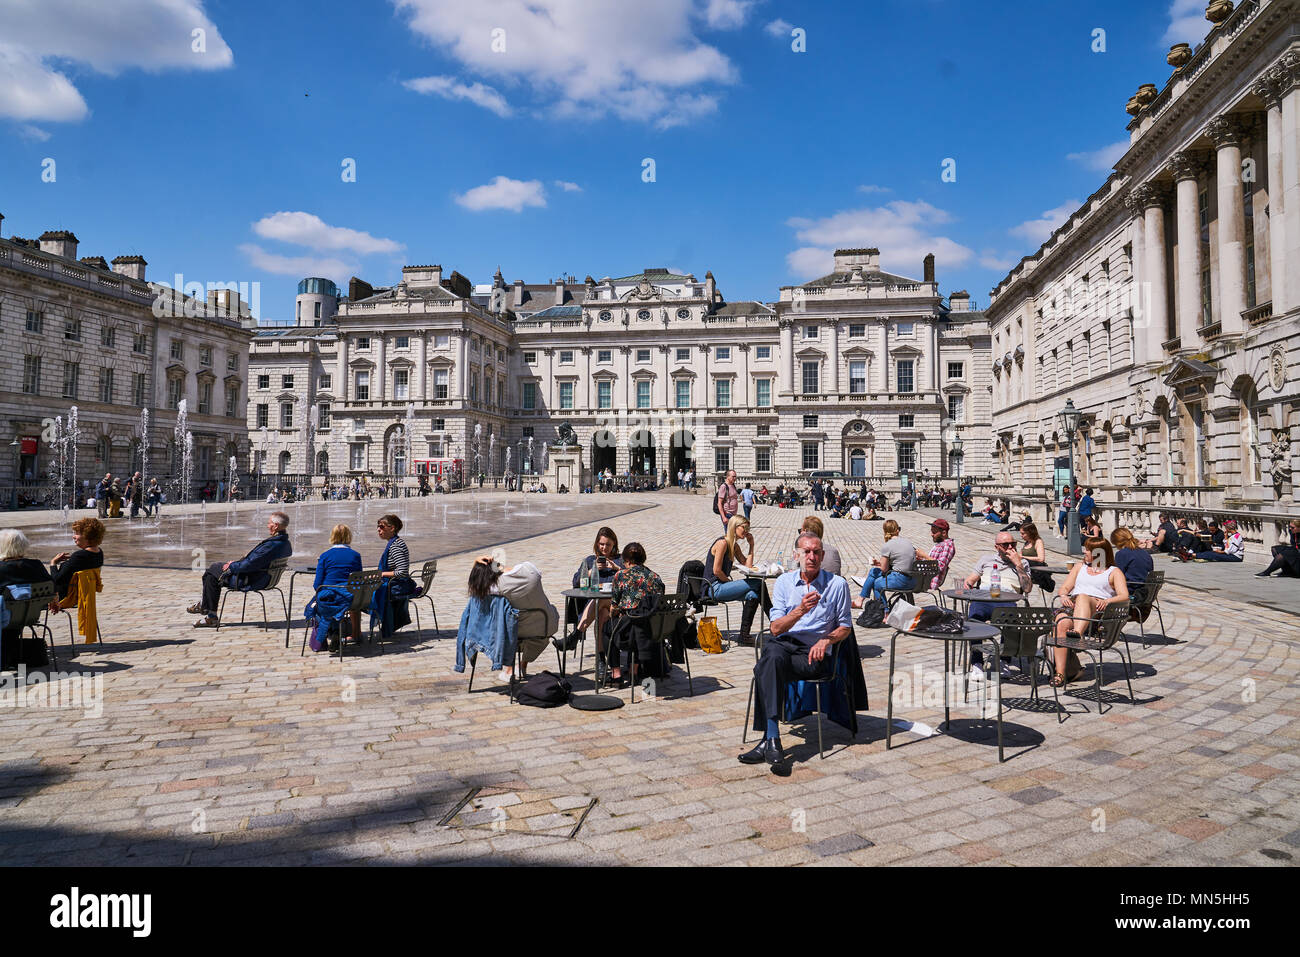 London fountains - Stock Image